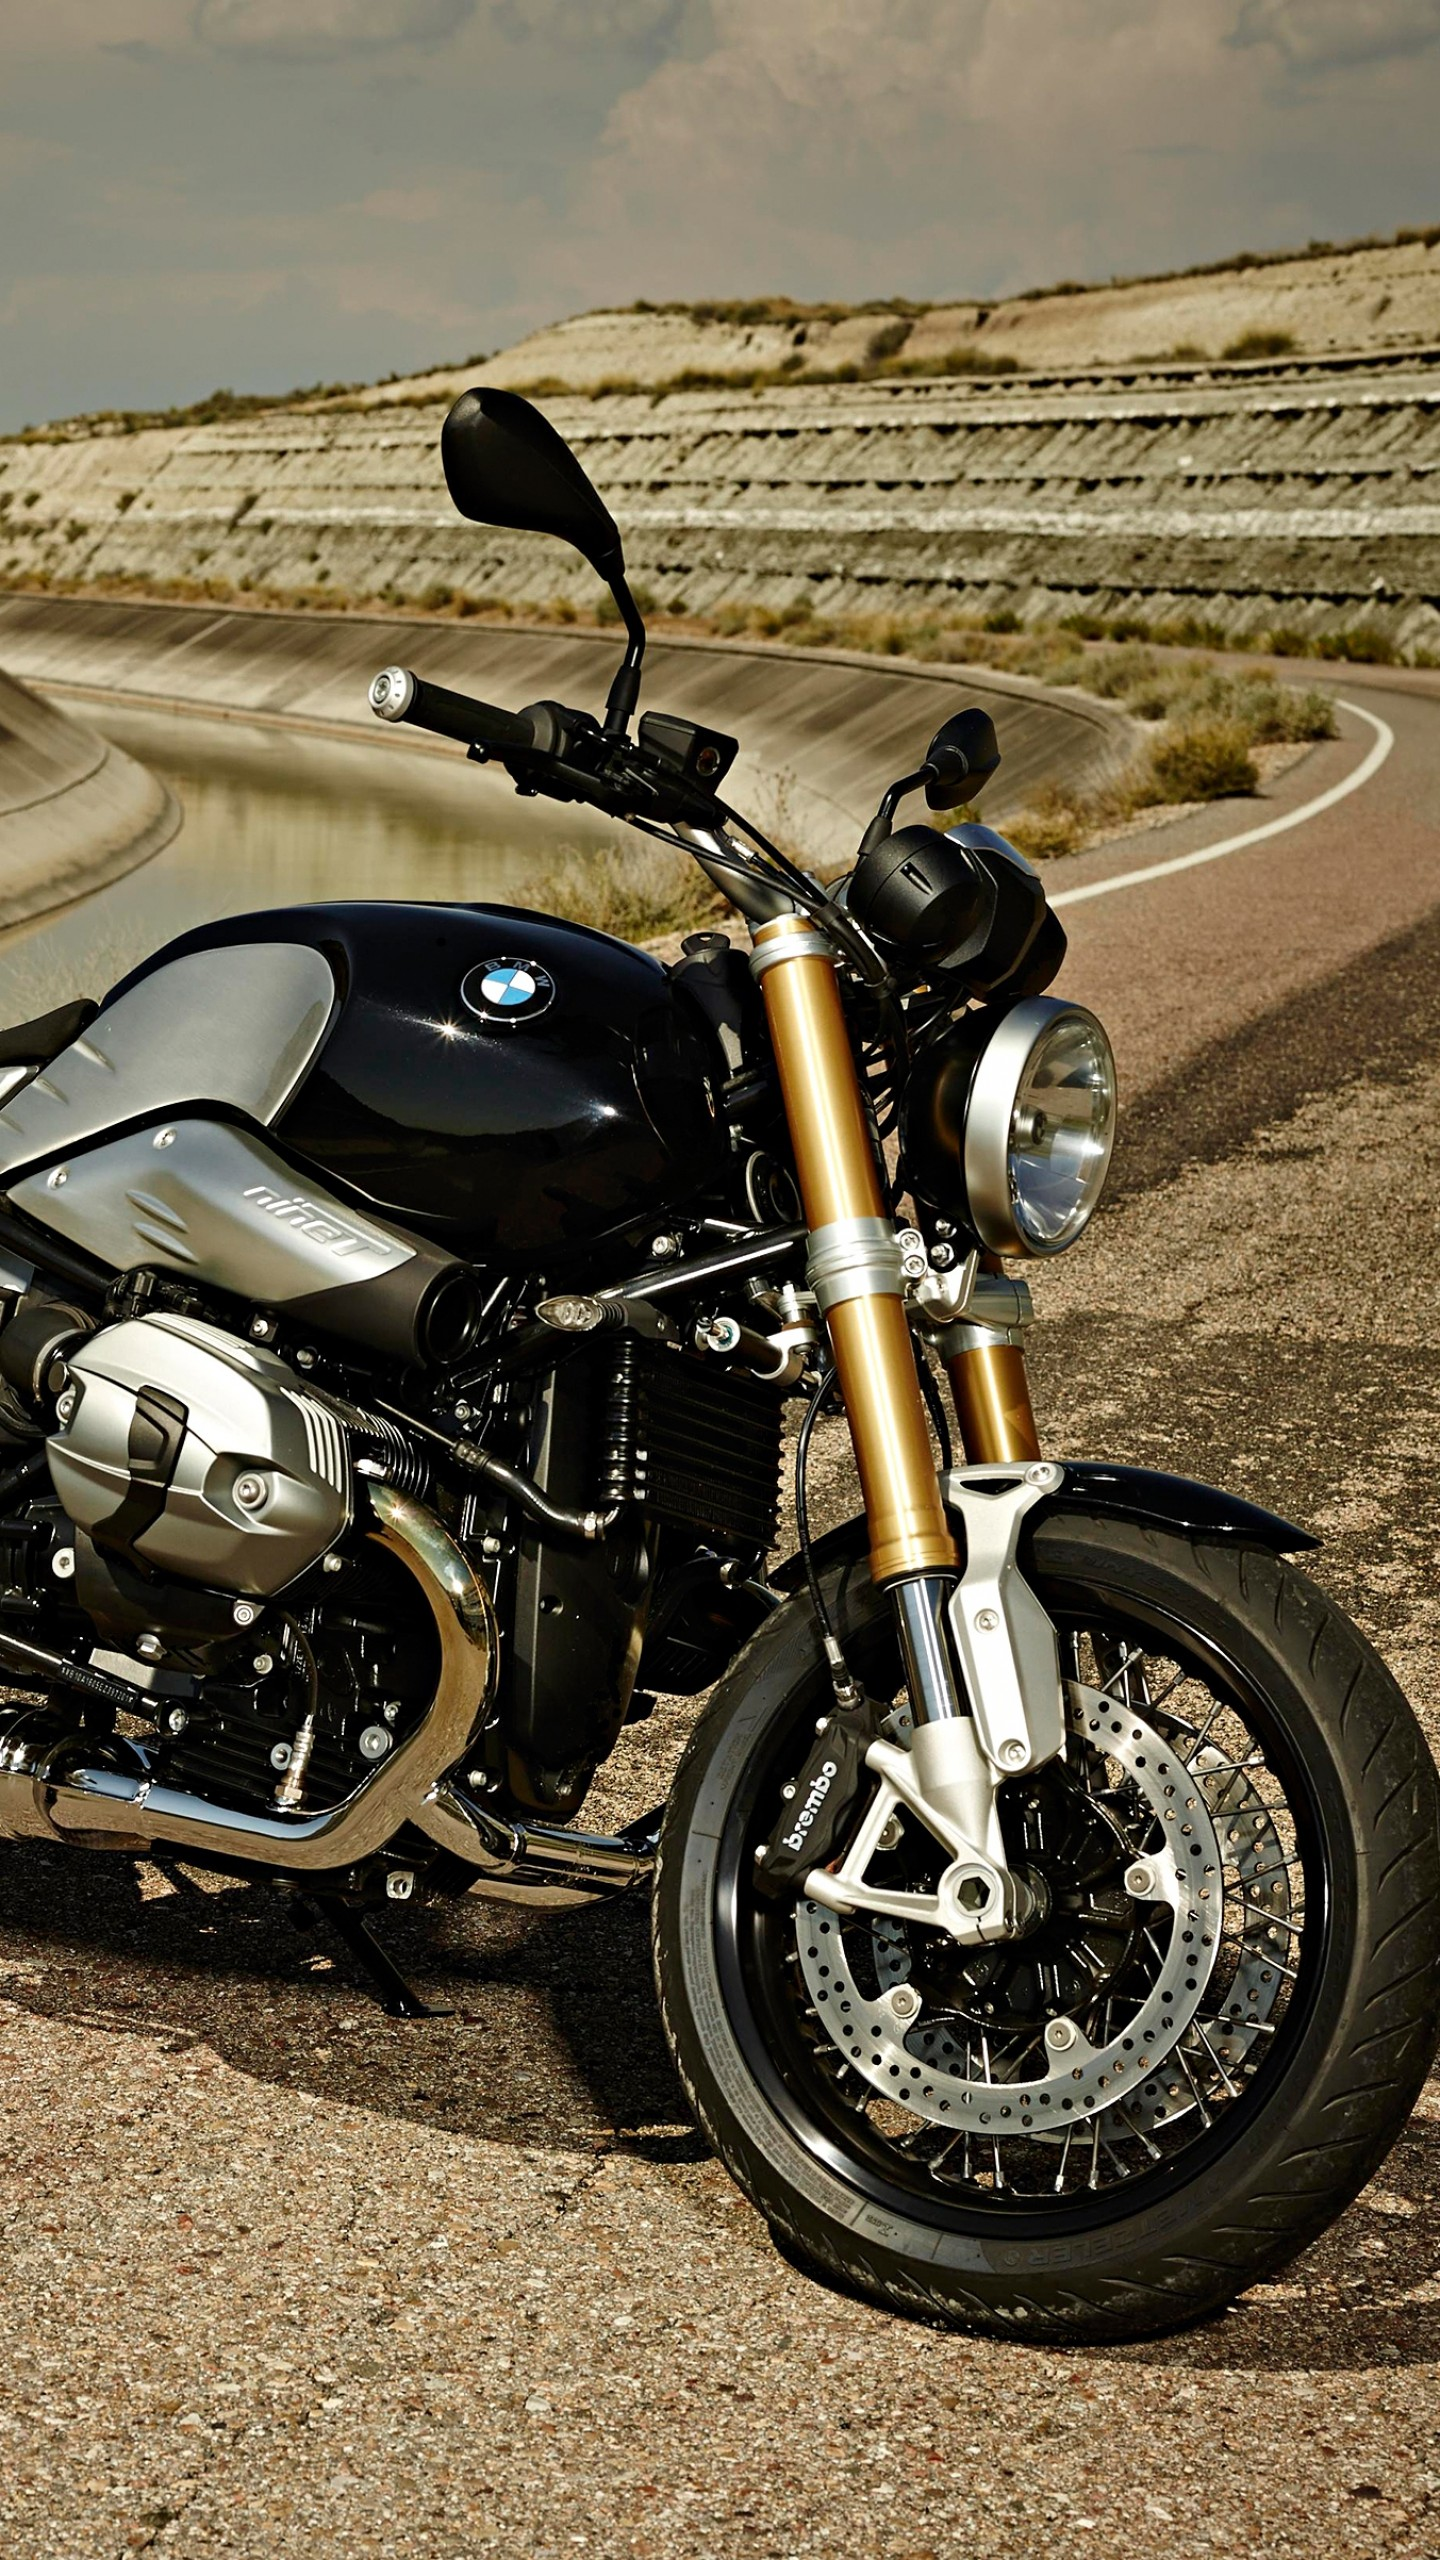 Wallpaper Bmw R Ninet Motorcycle 2015 Bike Review Test Drive Speed Buy Rent Side Road Cars Bikes 2928 Page 42